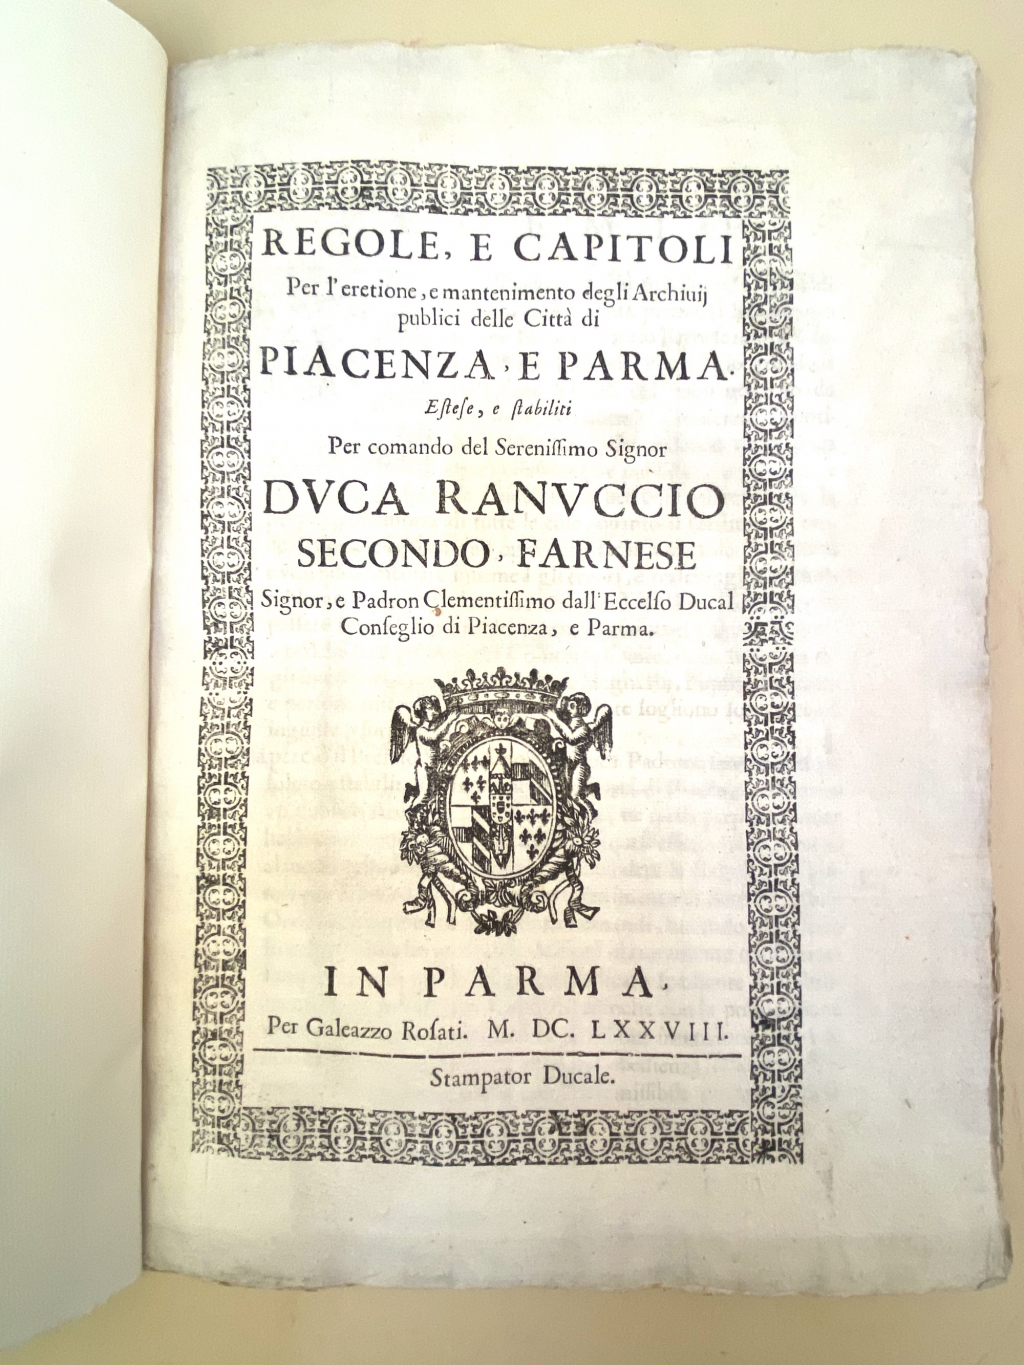 Parma rules for archive operation 1678